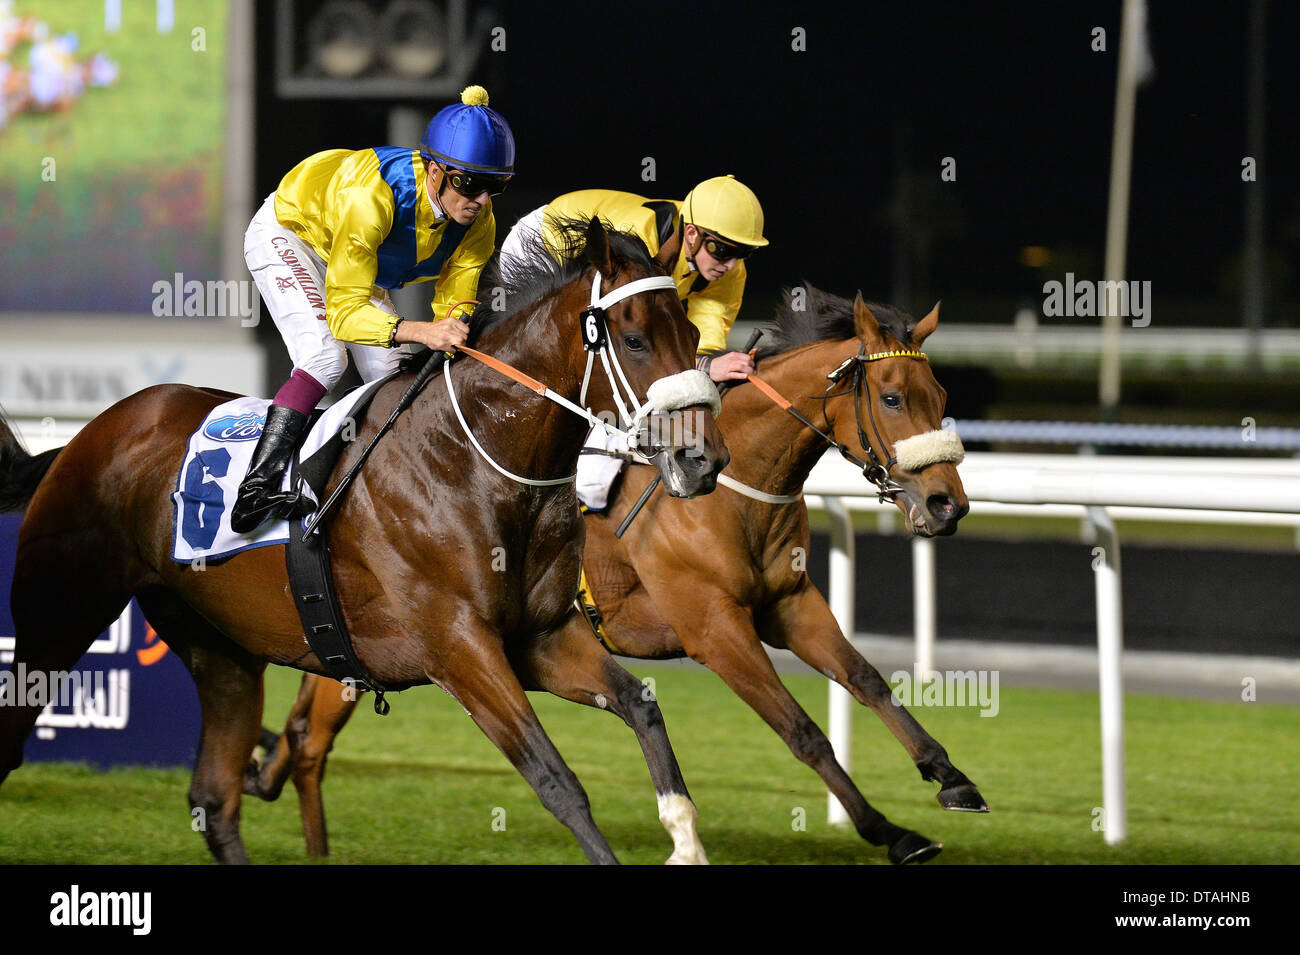 DUBAI, UAE, 13th Feb 2014. Vercingetorix (6) ridden by Christophe Soumillon wins the  Ford Taurus Trophy at the Meydan race track. In second place was CODE OF HONOR ridden by Silvestre de Sousa (not pictured) of Godolphin - Stock Image